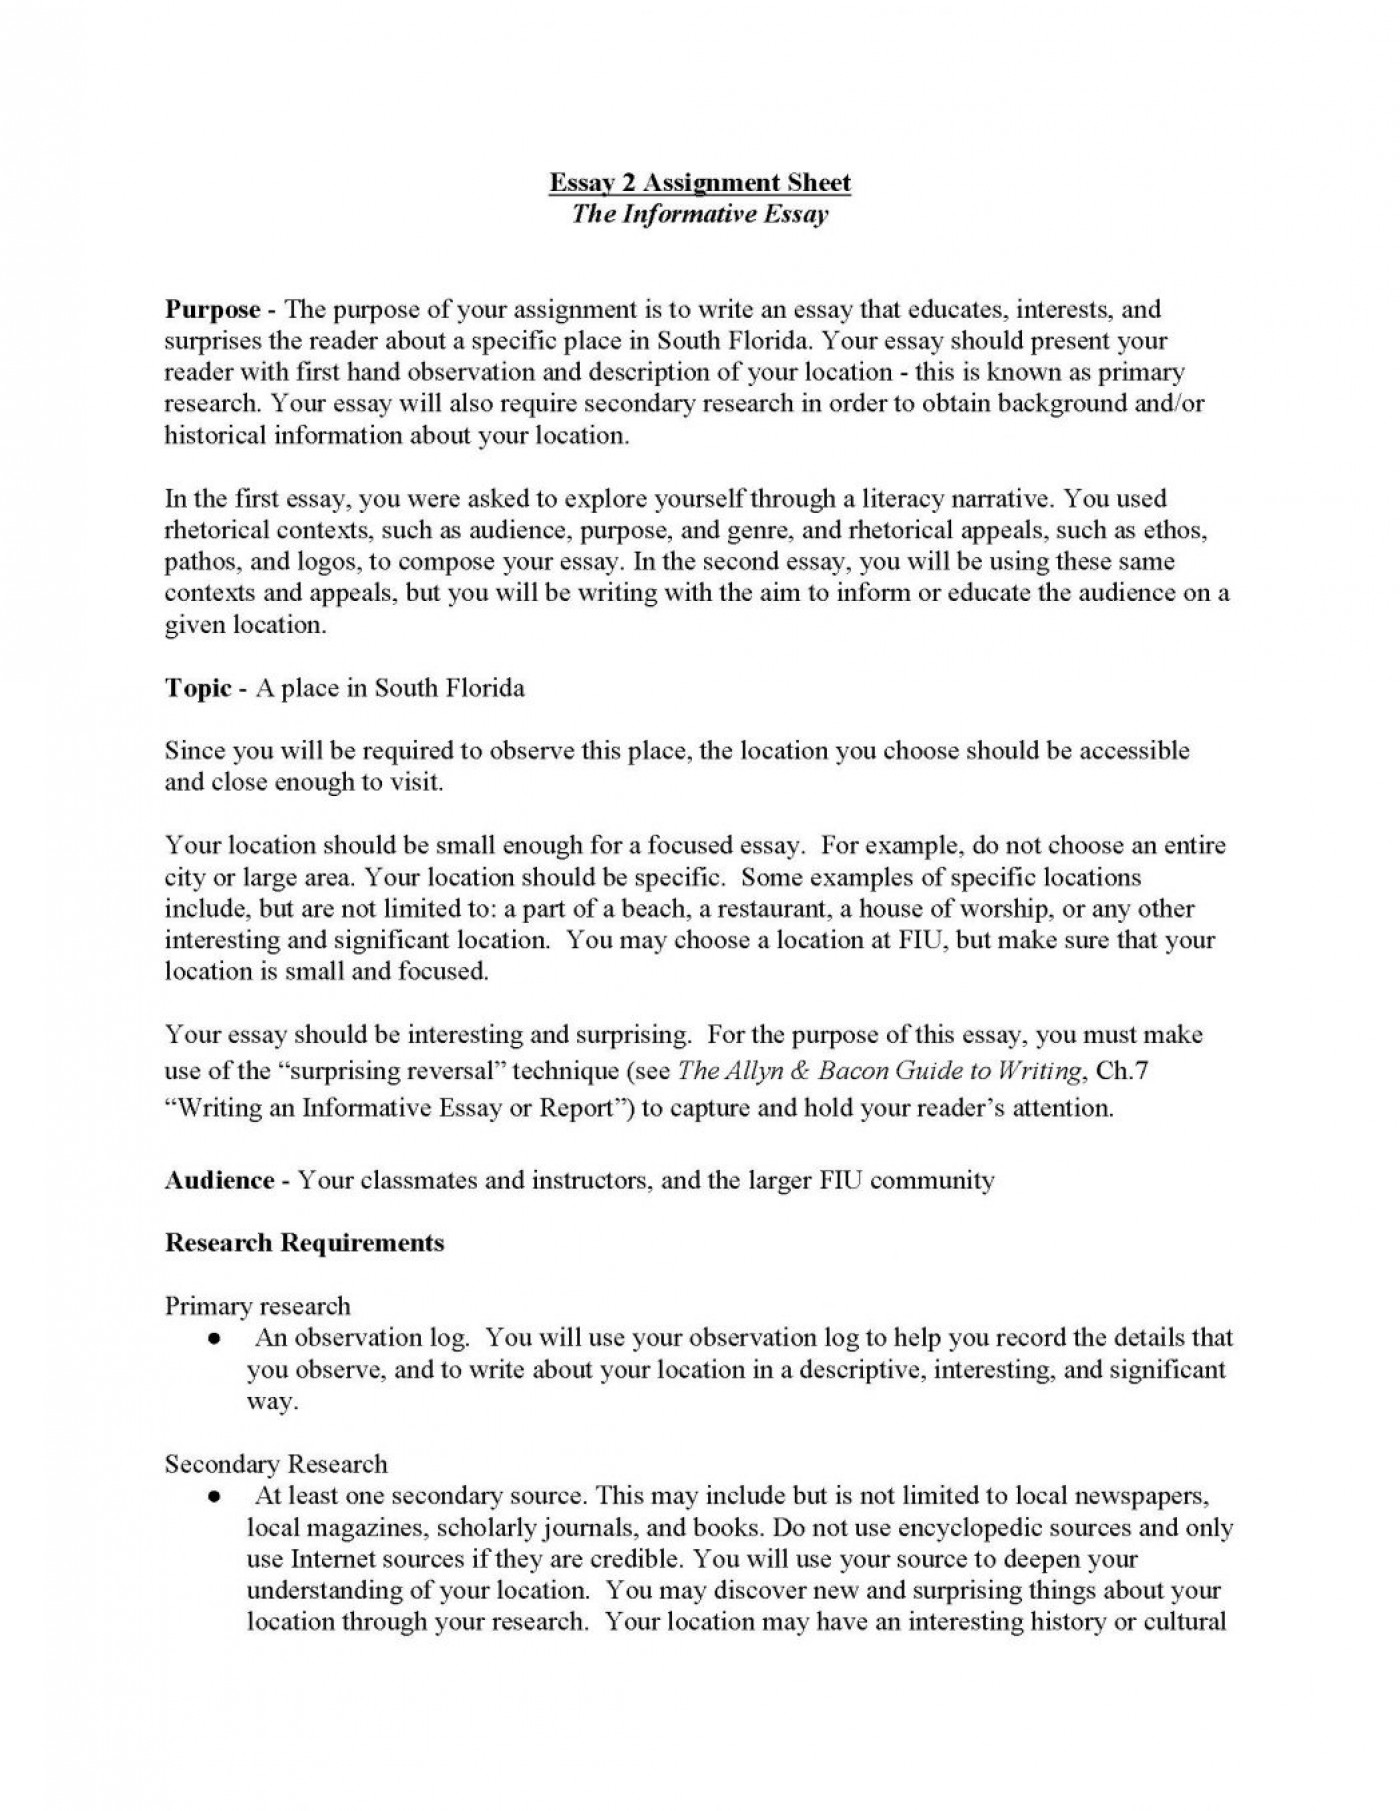 014 Essay Example How To Write This I Believe Synthesis Topic Ideas Informative Research Topics Samples Unit Assignment P Good Template Fantastic A Things On What 1400